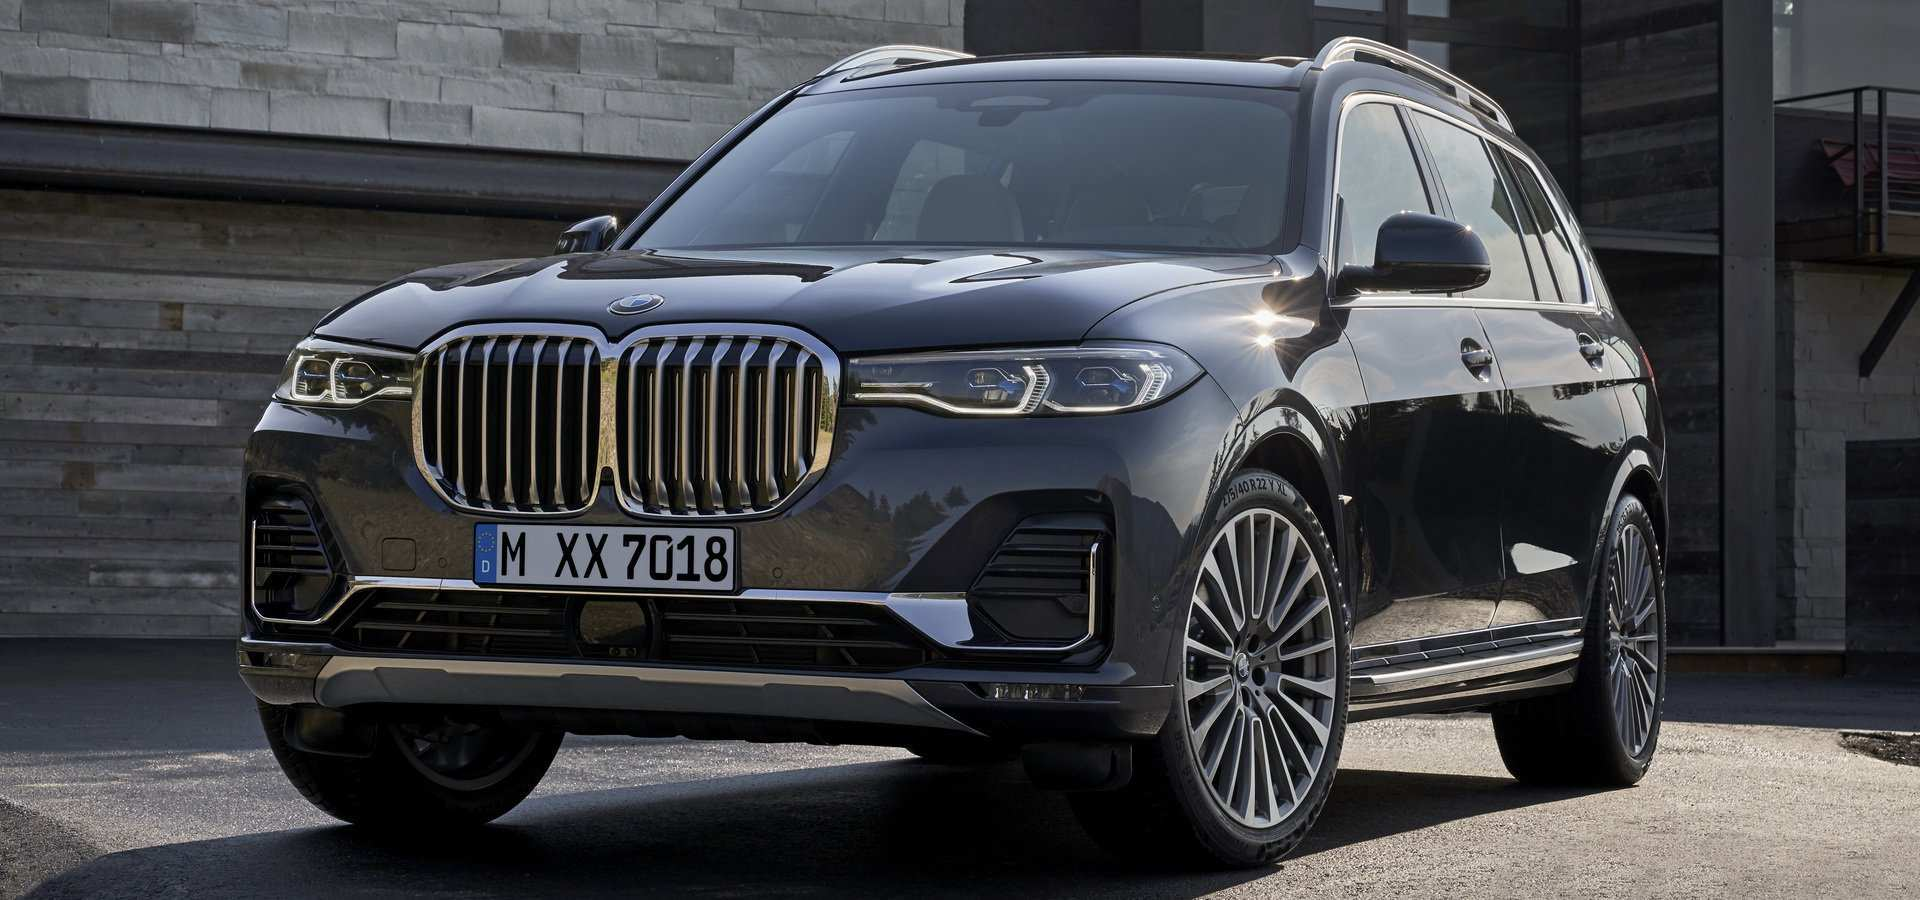 45 The Best BMW X7 Vs Mercedes Gls 2020 Picture